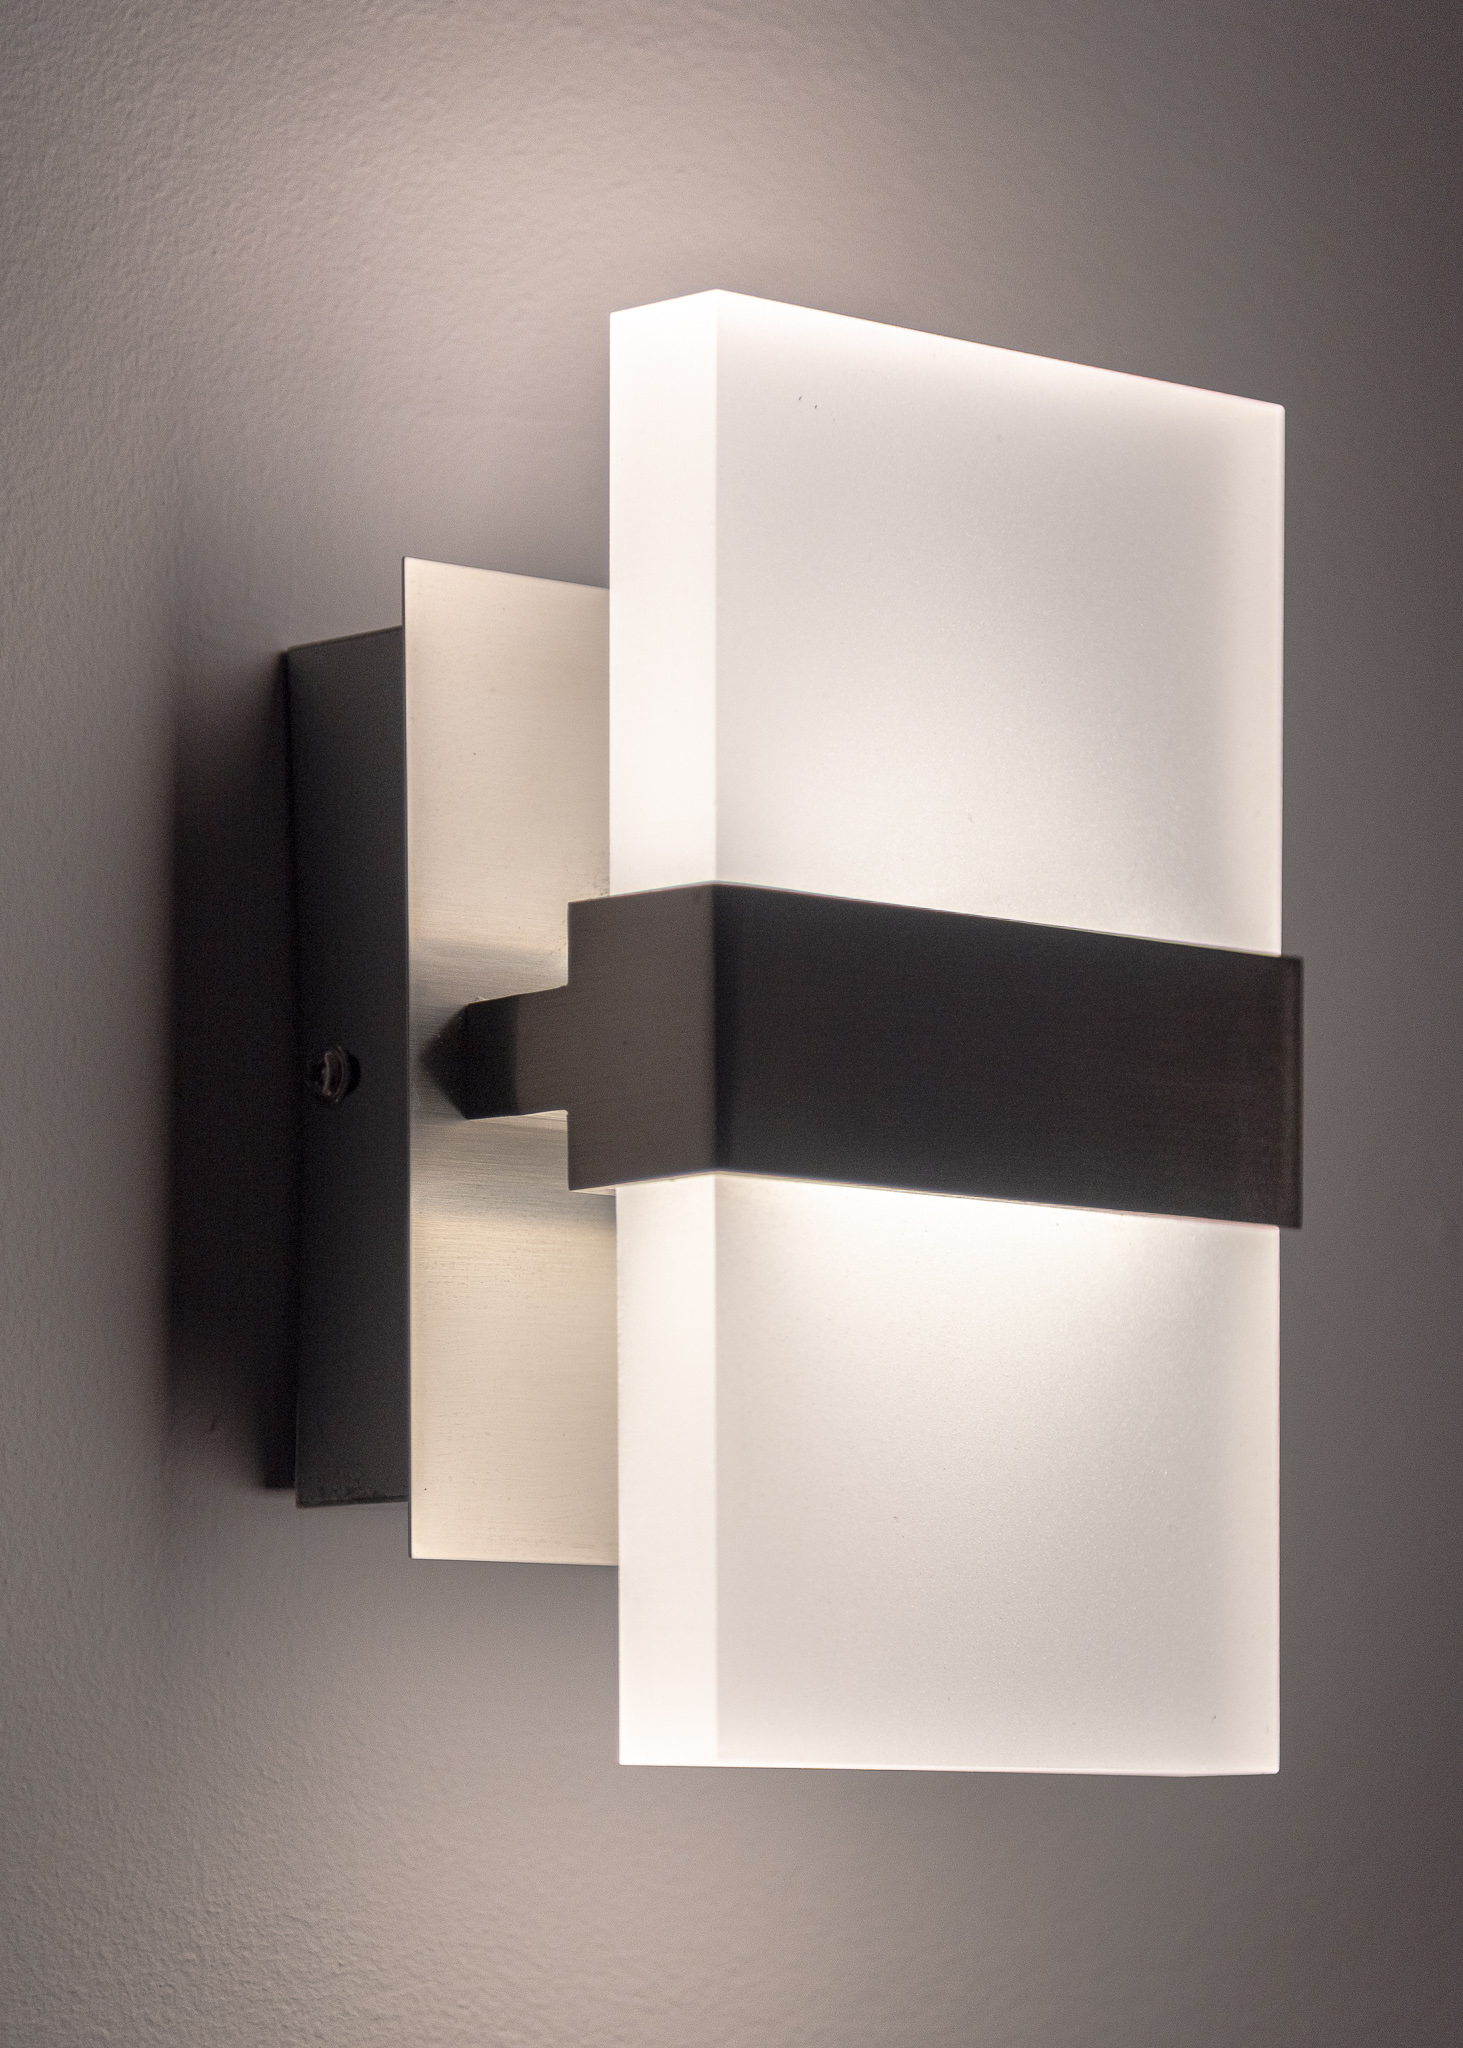 Wall sconce / Image: Phil Armstrong, Cincinnati Refined // Published: 12.25.19